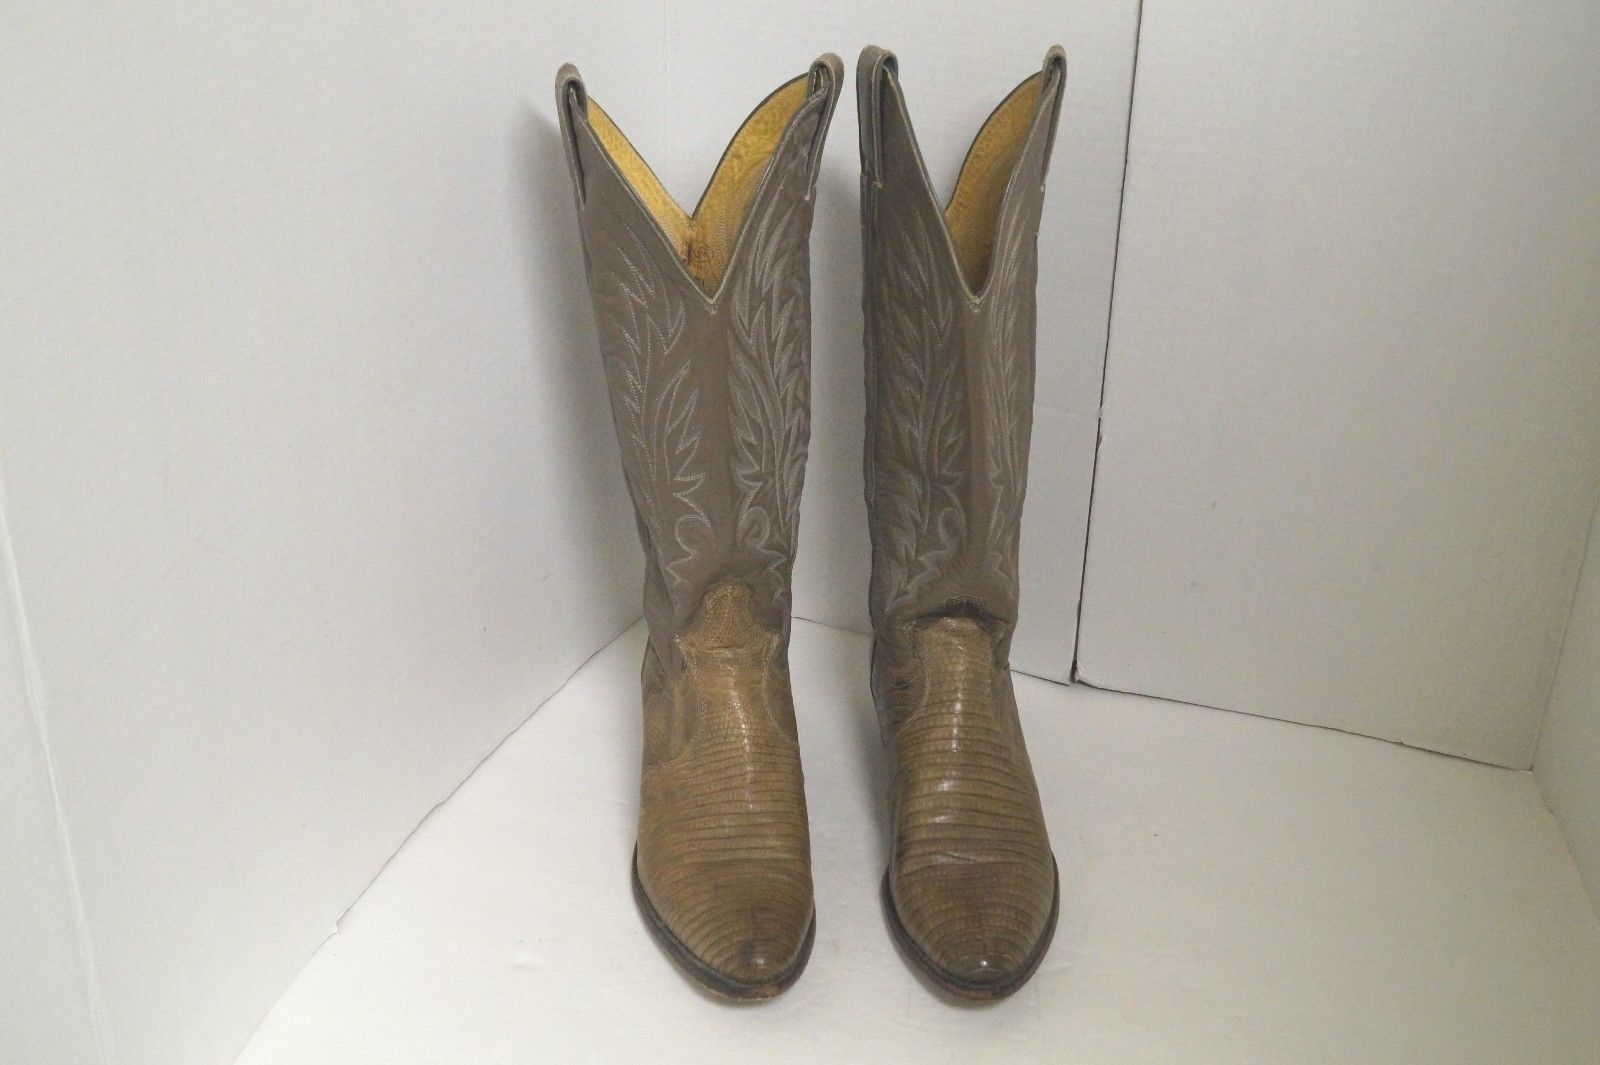 Justin L4701 Womens 5.5 B Western Cowboy Boots Brown Tan Leather Lizard Hipster